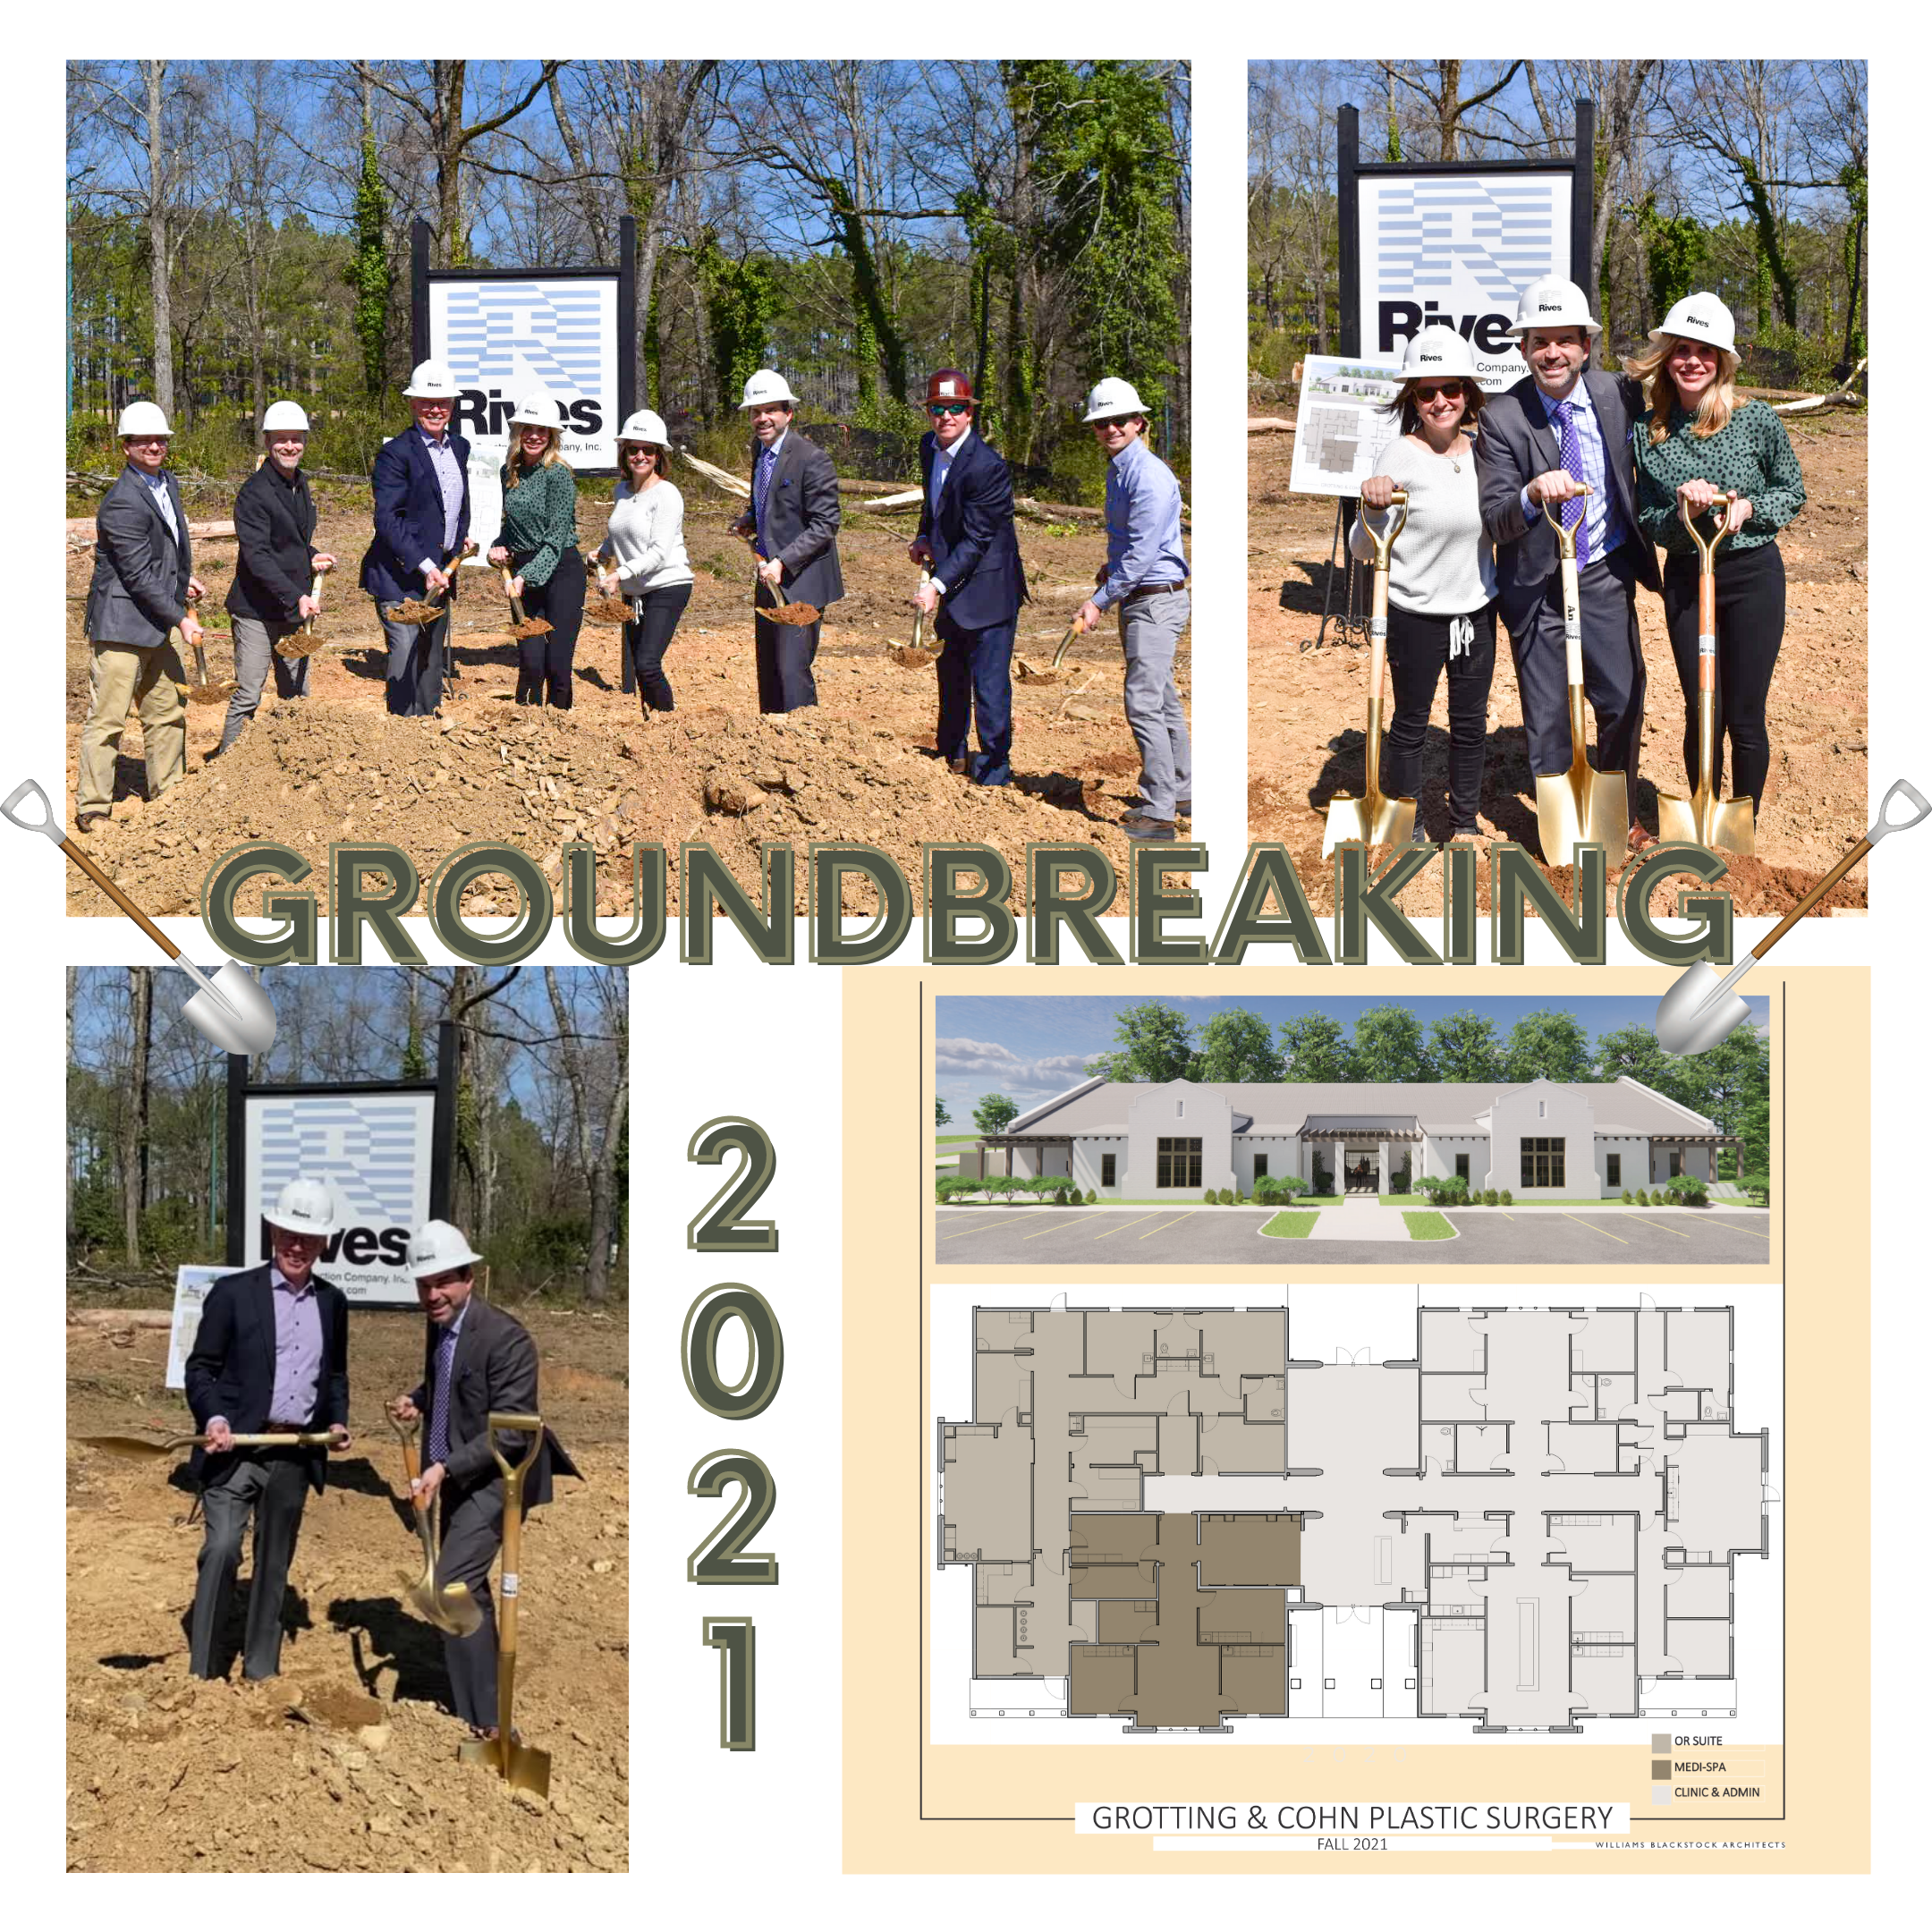 Groundbreaking Ceremony for the New Office